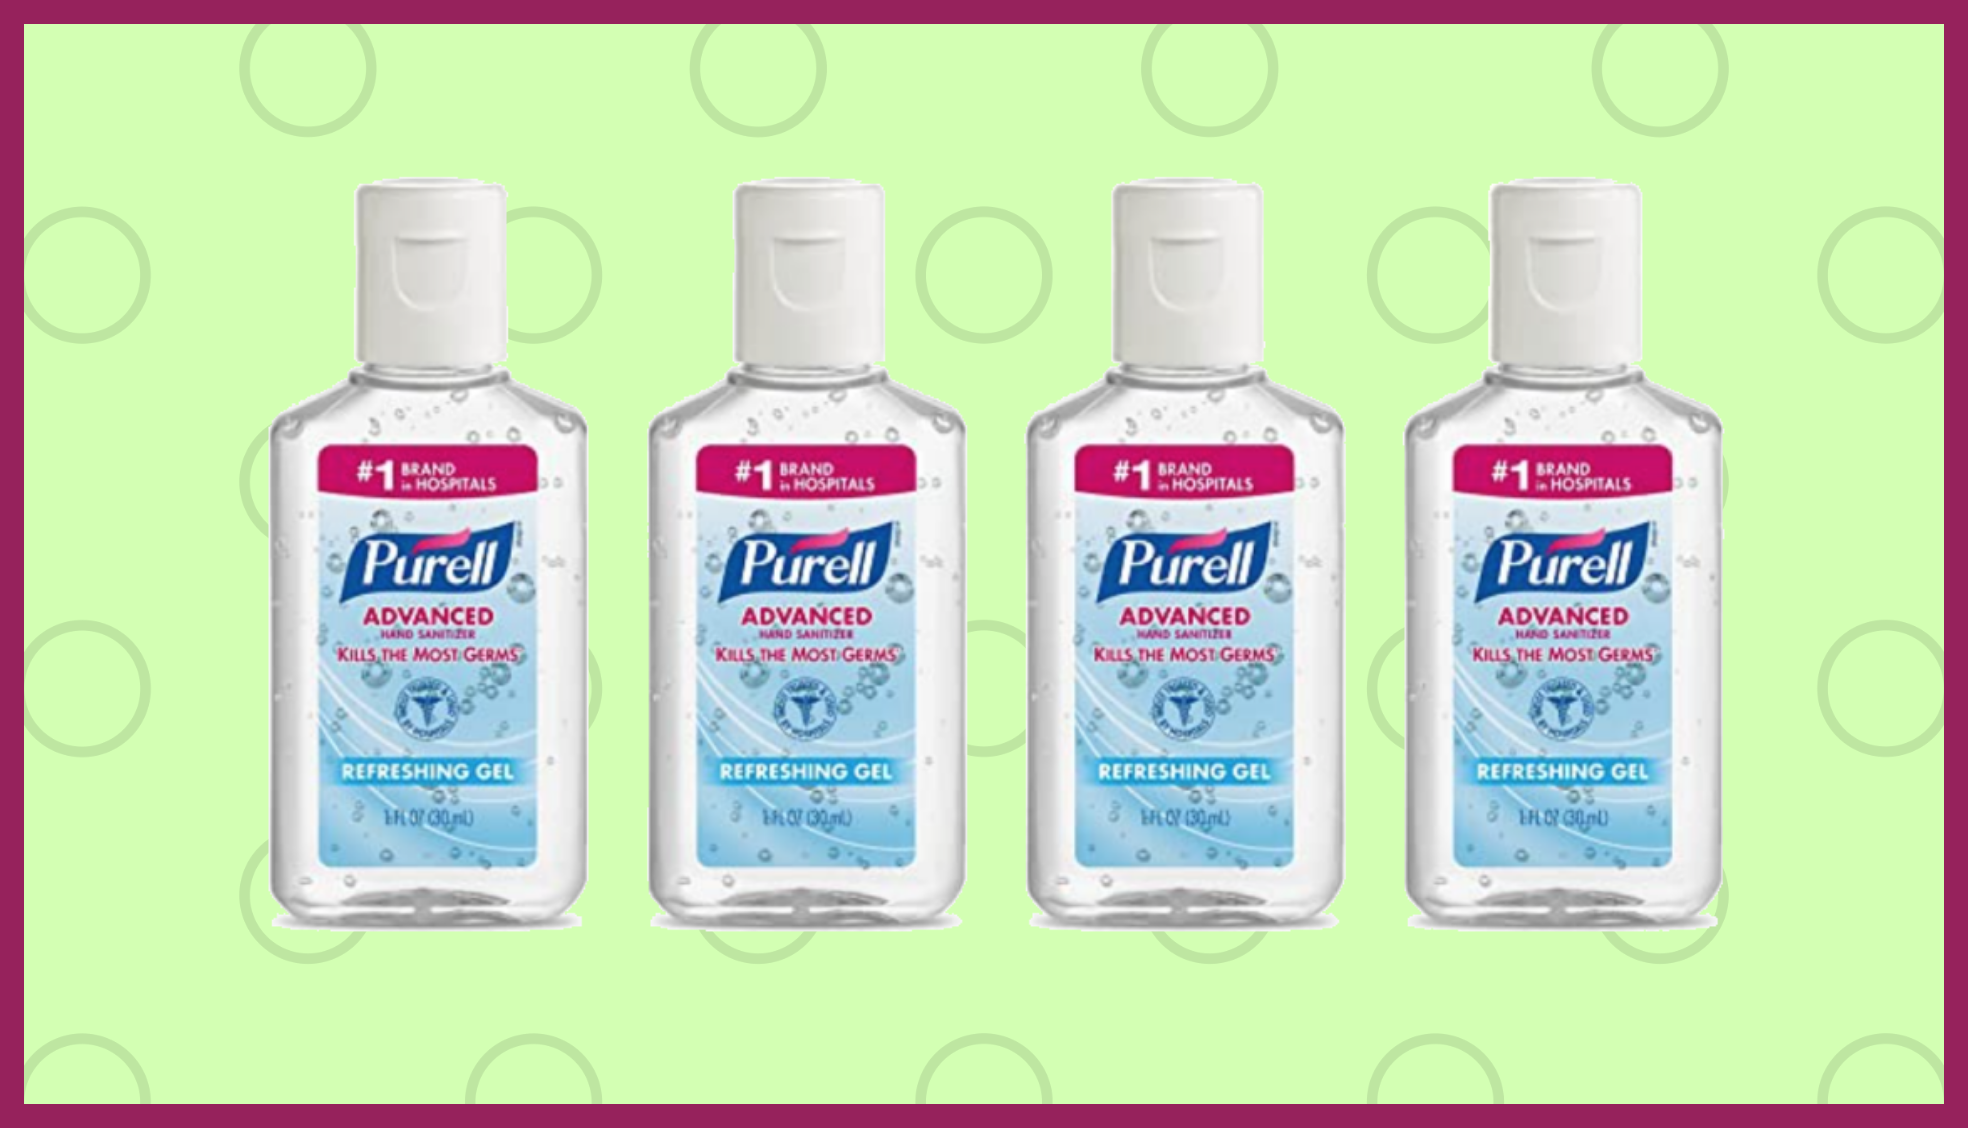 Purell hand sanitizer is back in stock at Amazon—get it while you can